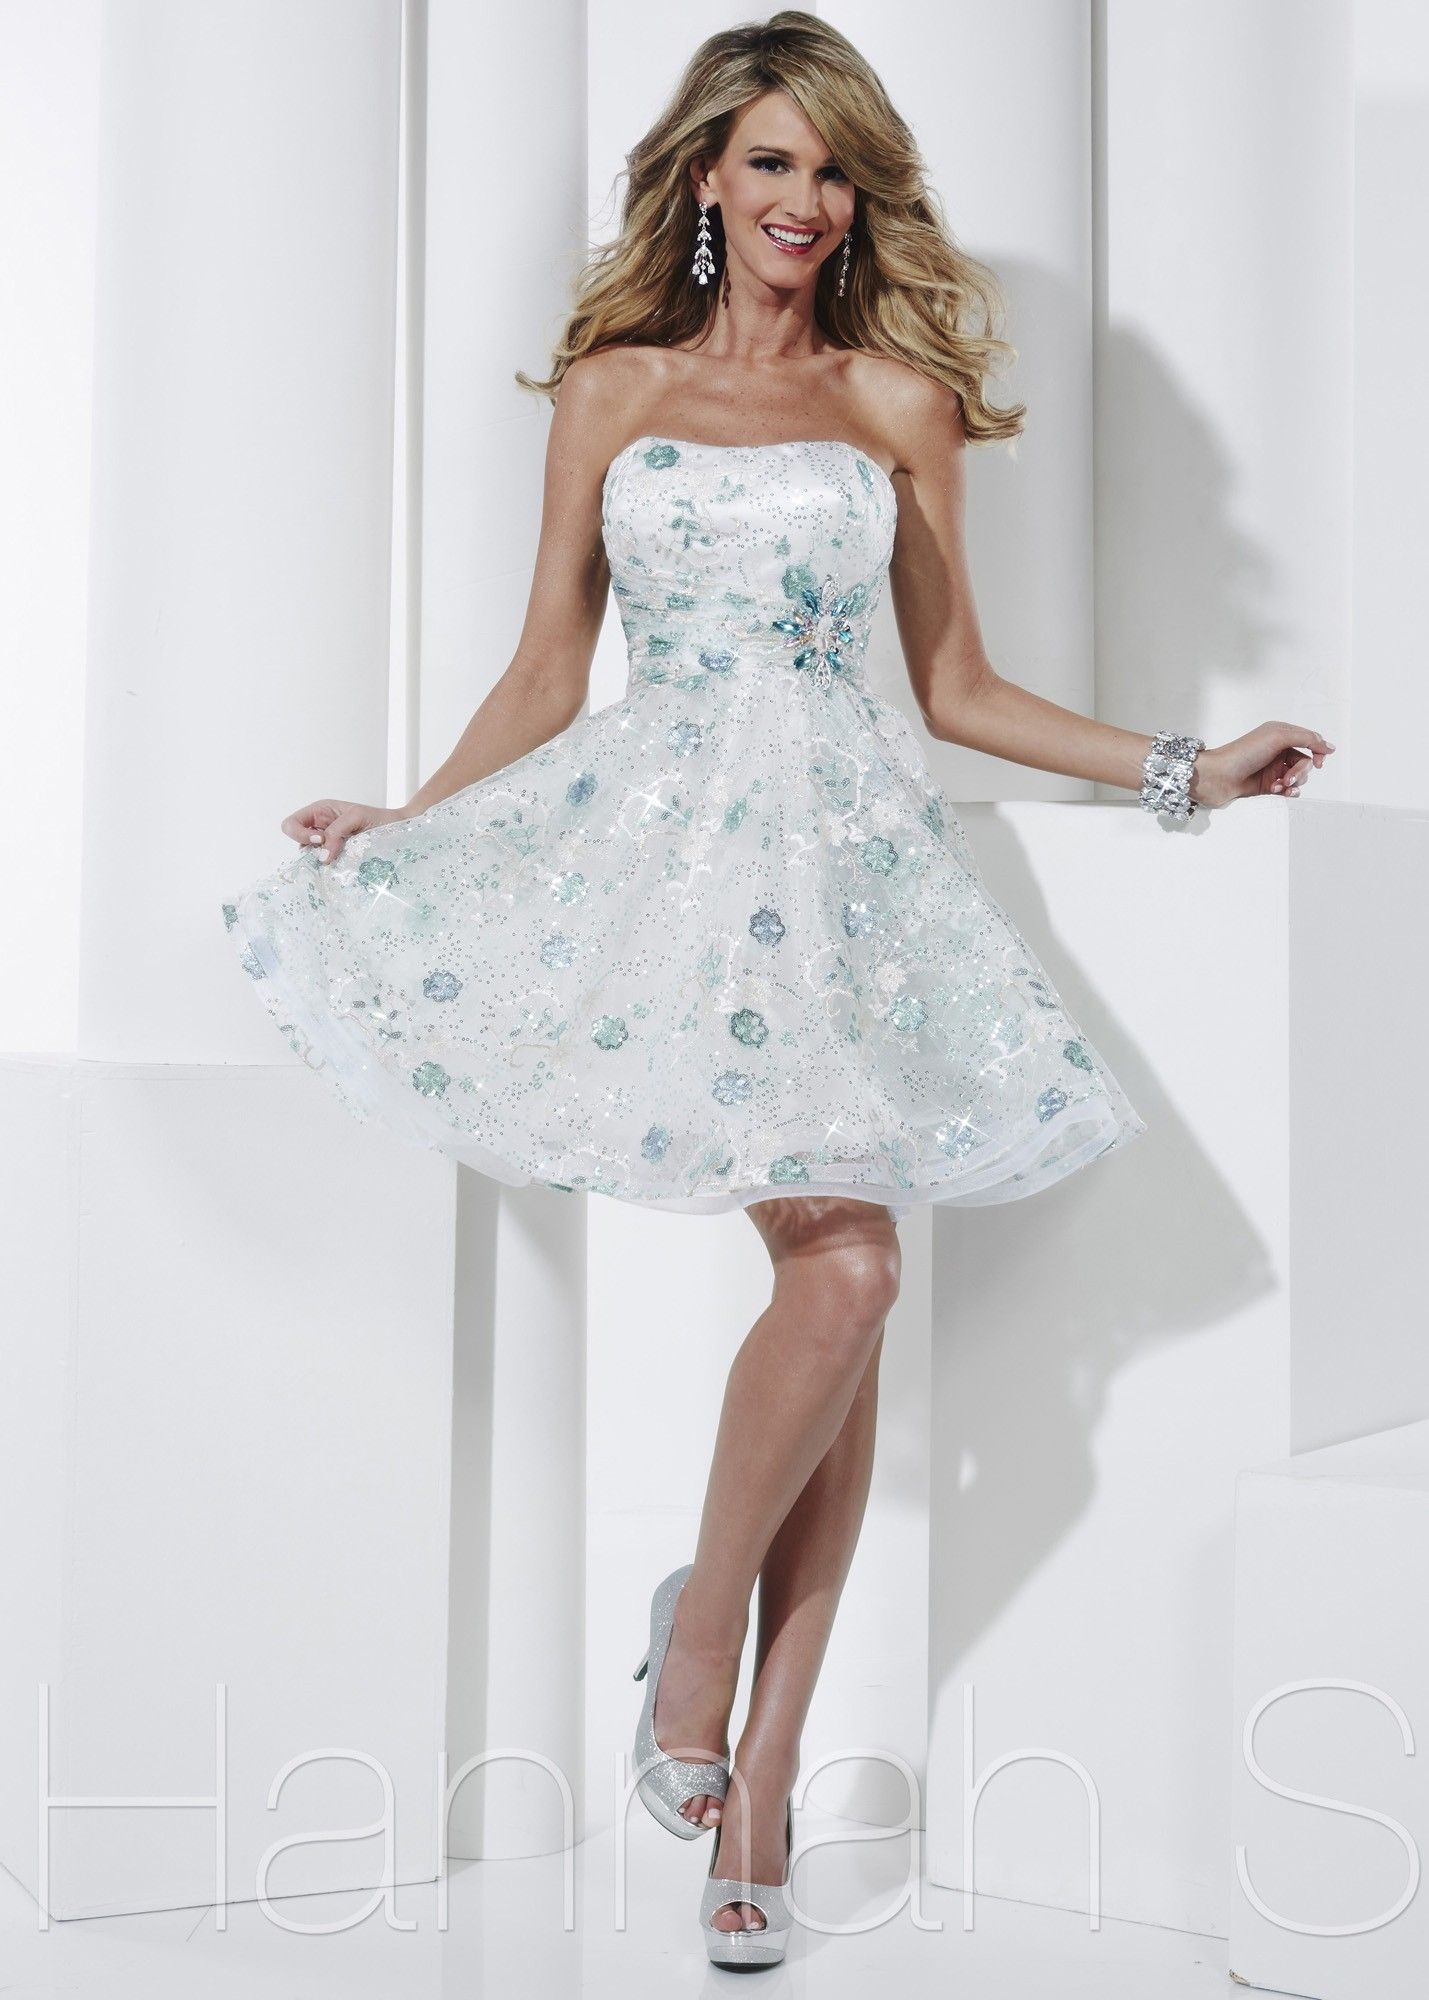 c5ee4b74db842 Adorable White and Mint Beaded Graduation Dress - Short Prom Dresses - Hannah  S 27833 - RissyRoos.com